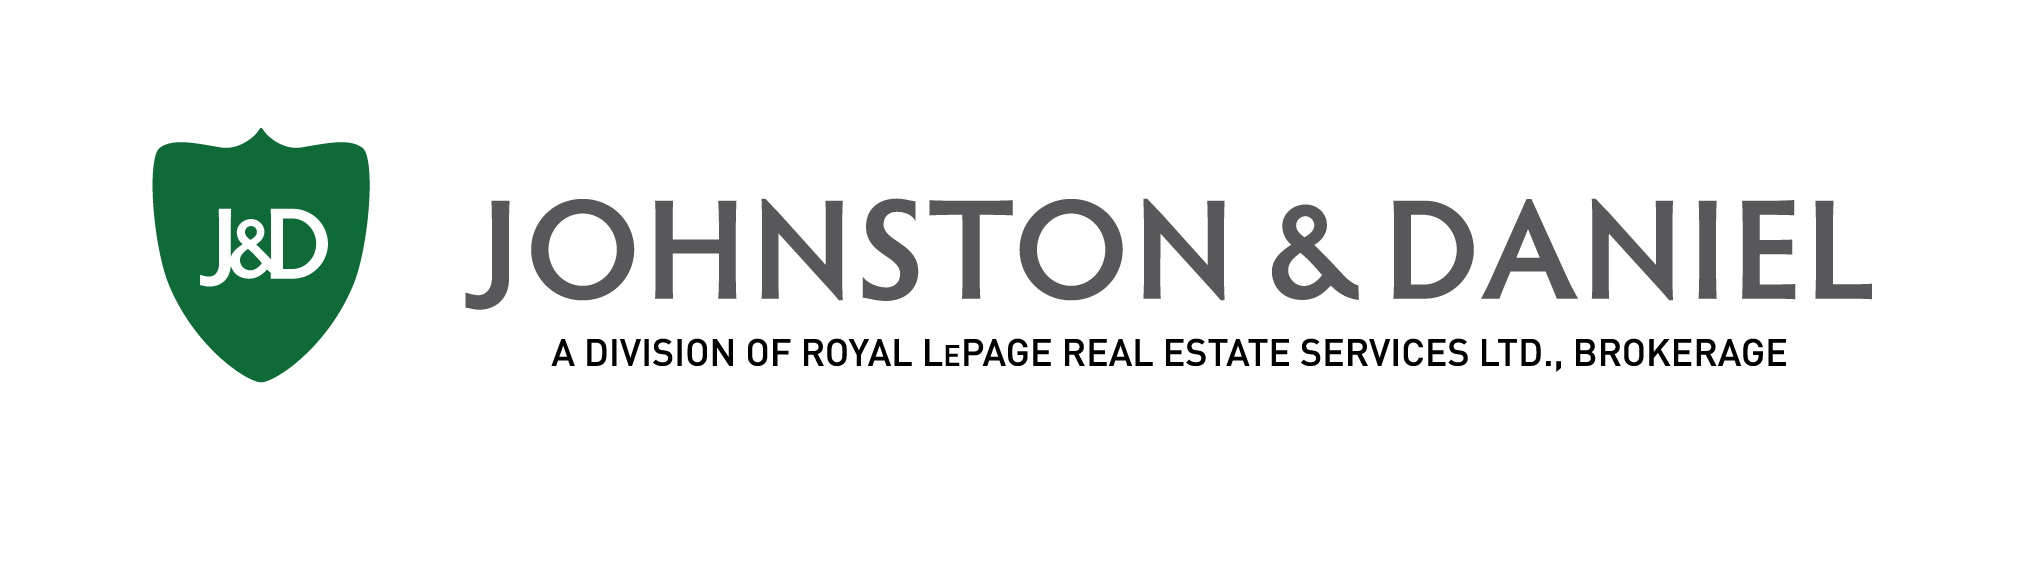 Johnston & Daniel Logo